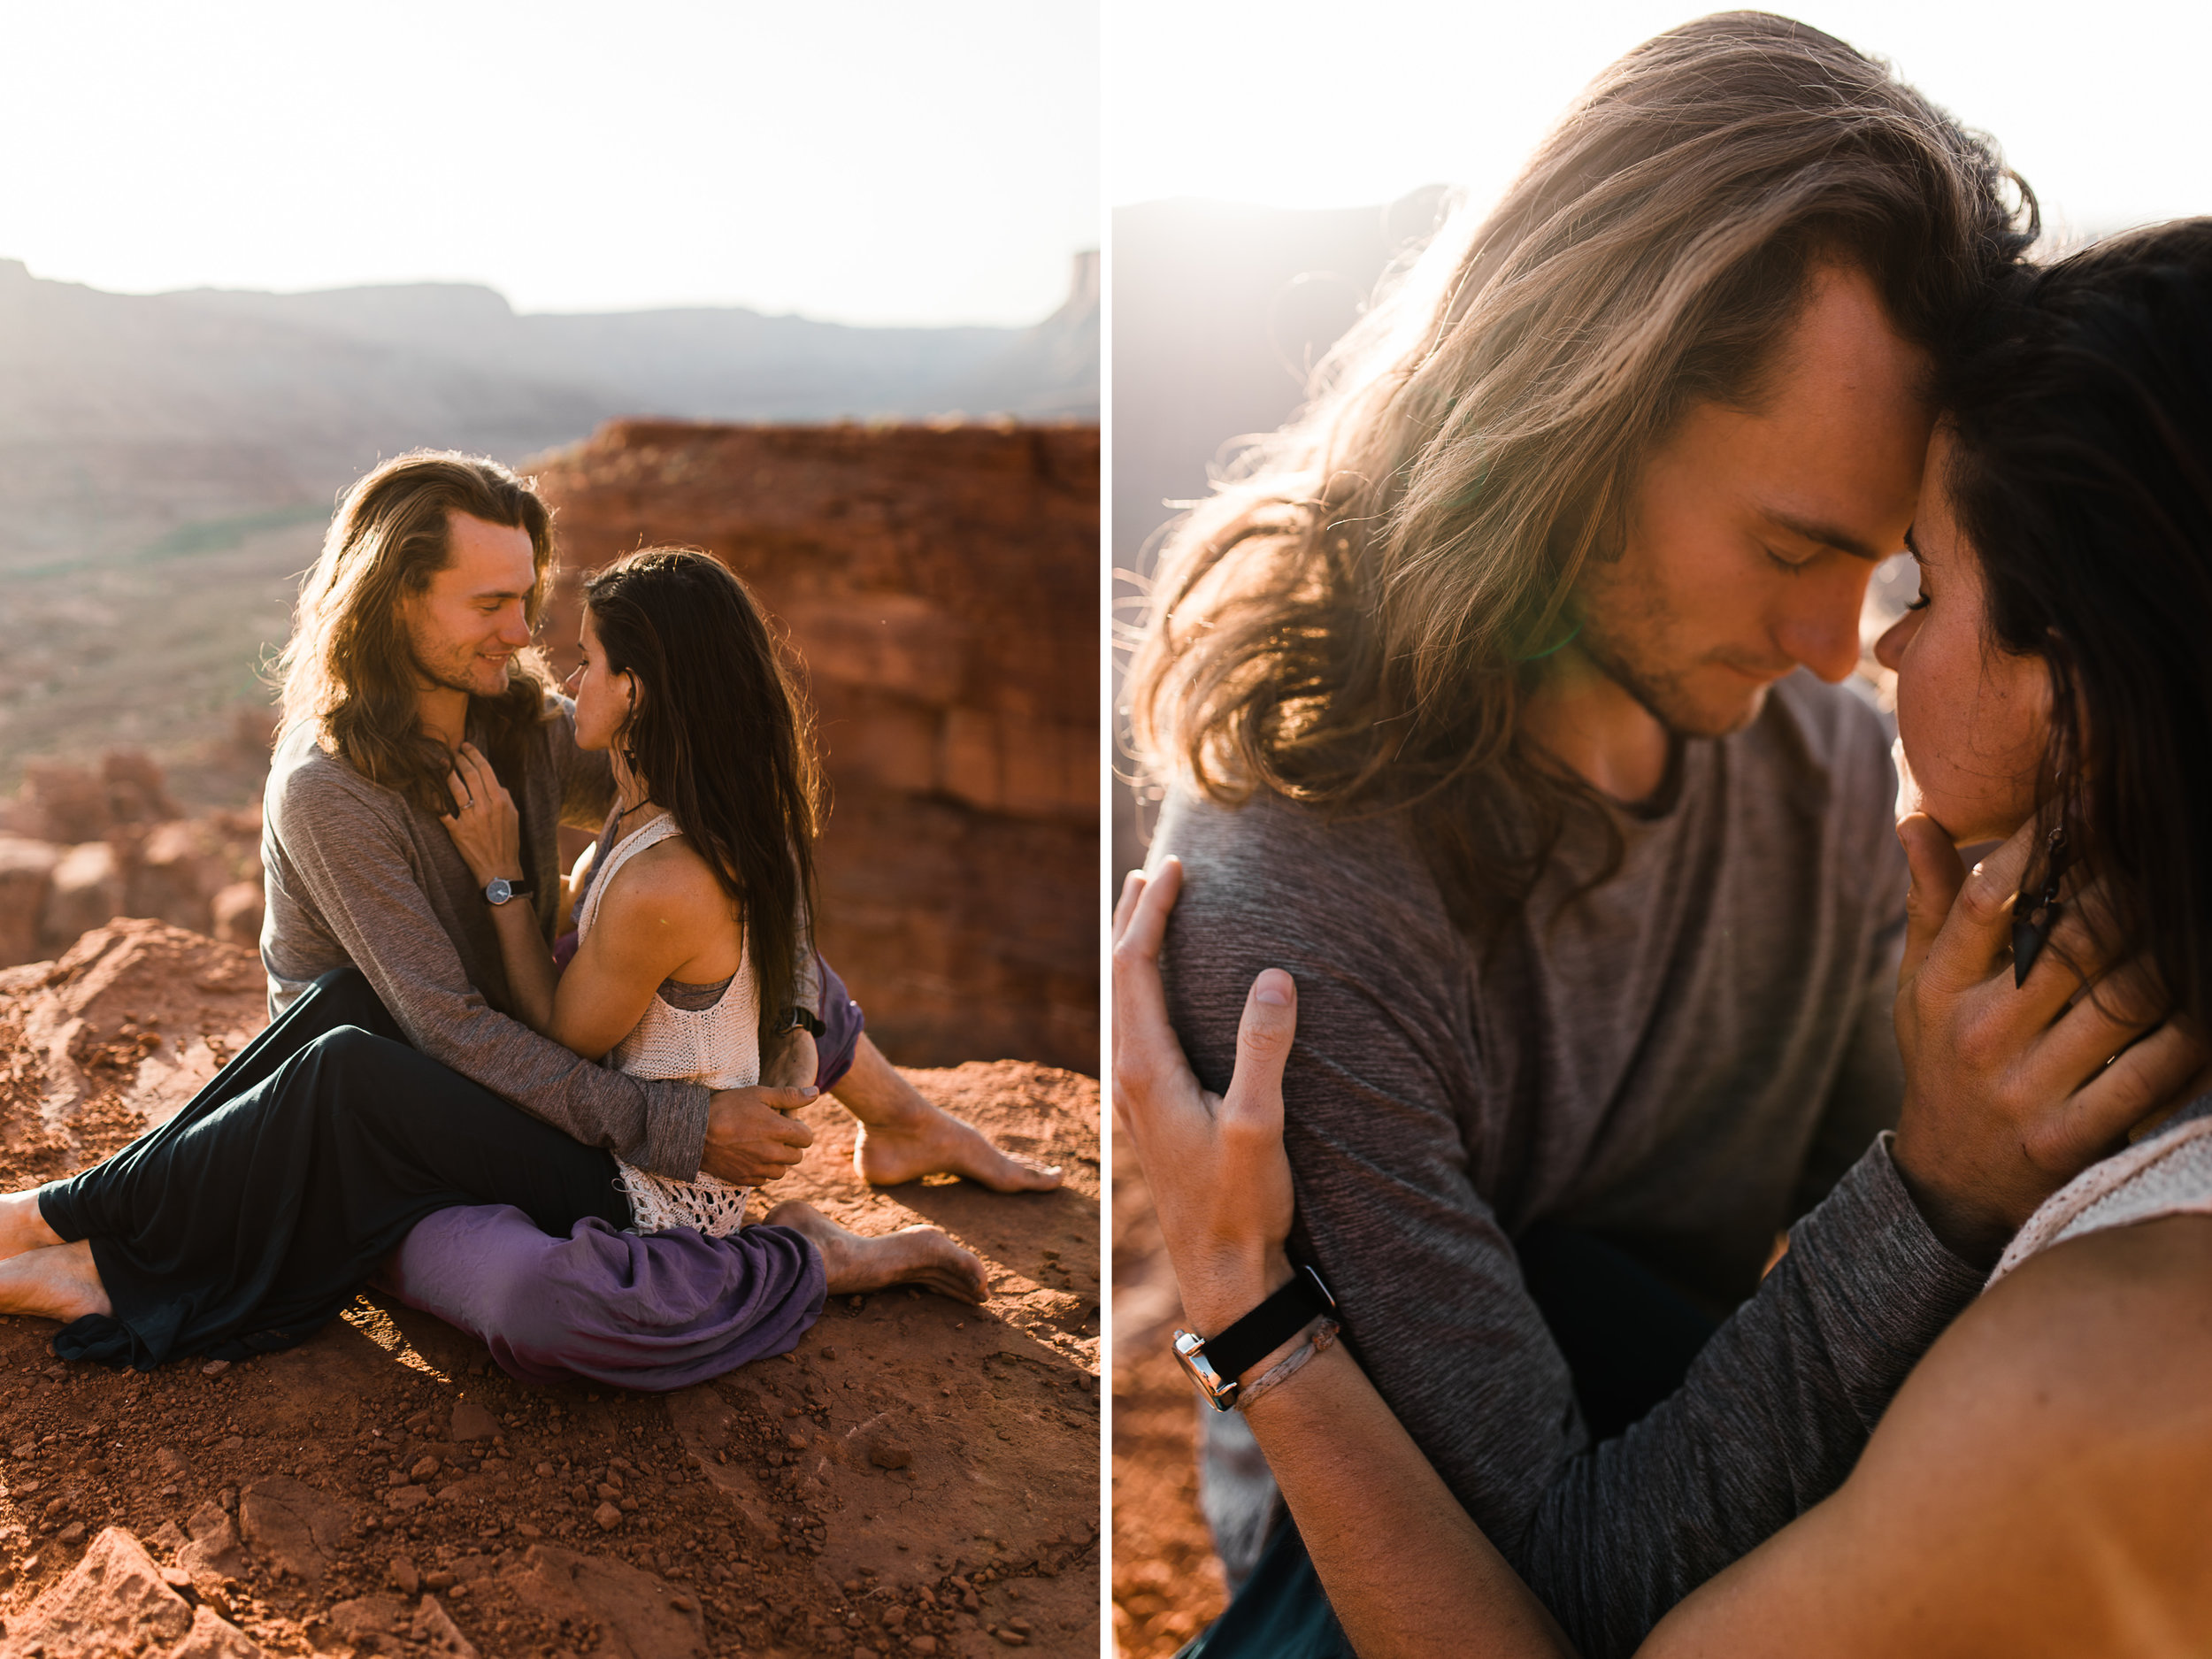 extreme acro-yoga engagement session in moab, utah // desert elopement inspiration // adventure wedding photographers // the hearnes adventure wedding photography // www.thehearnes.com